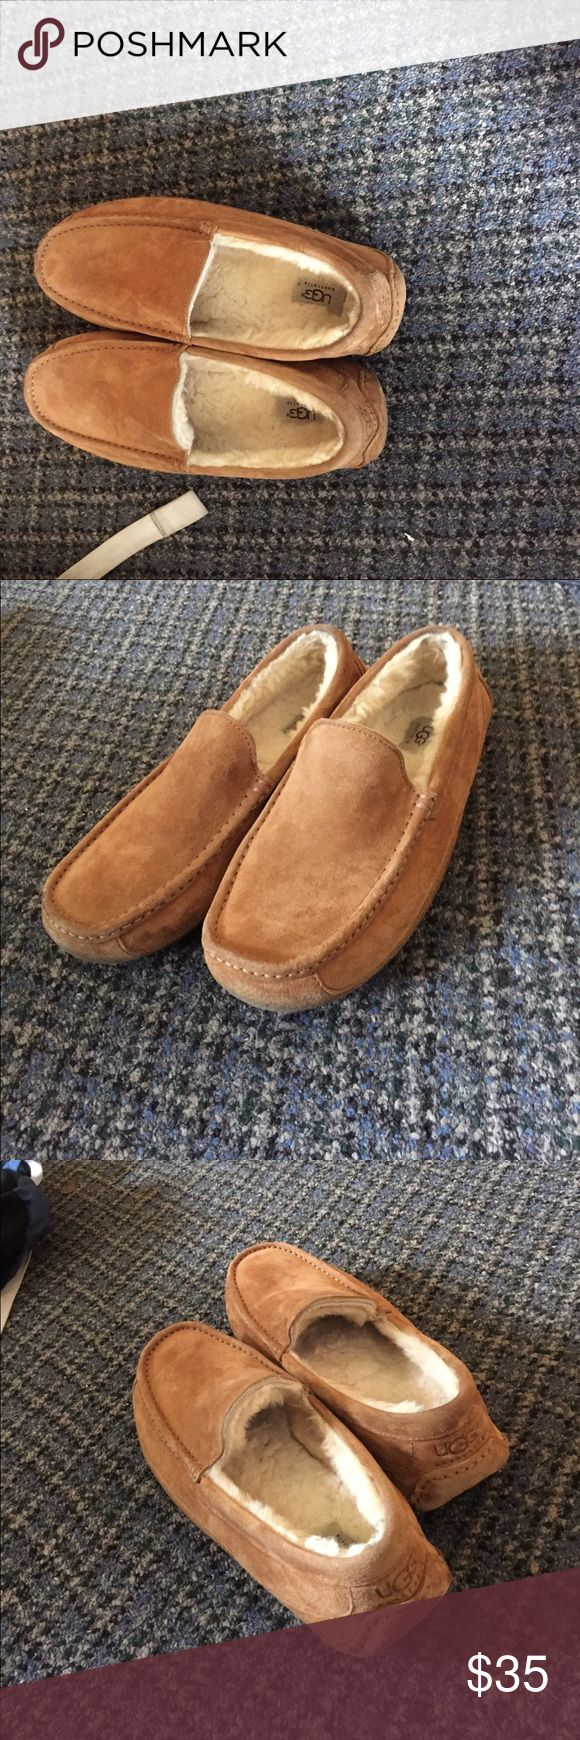 Ugg Men's Ascot Great slipper, selling cause slightly small on me UGG Shoes Loafers & Slip-Ons